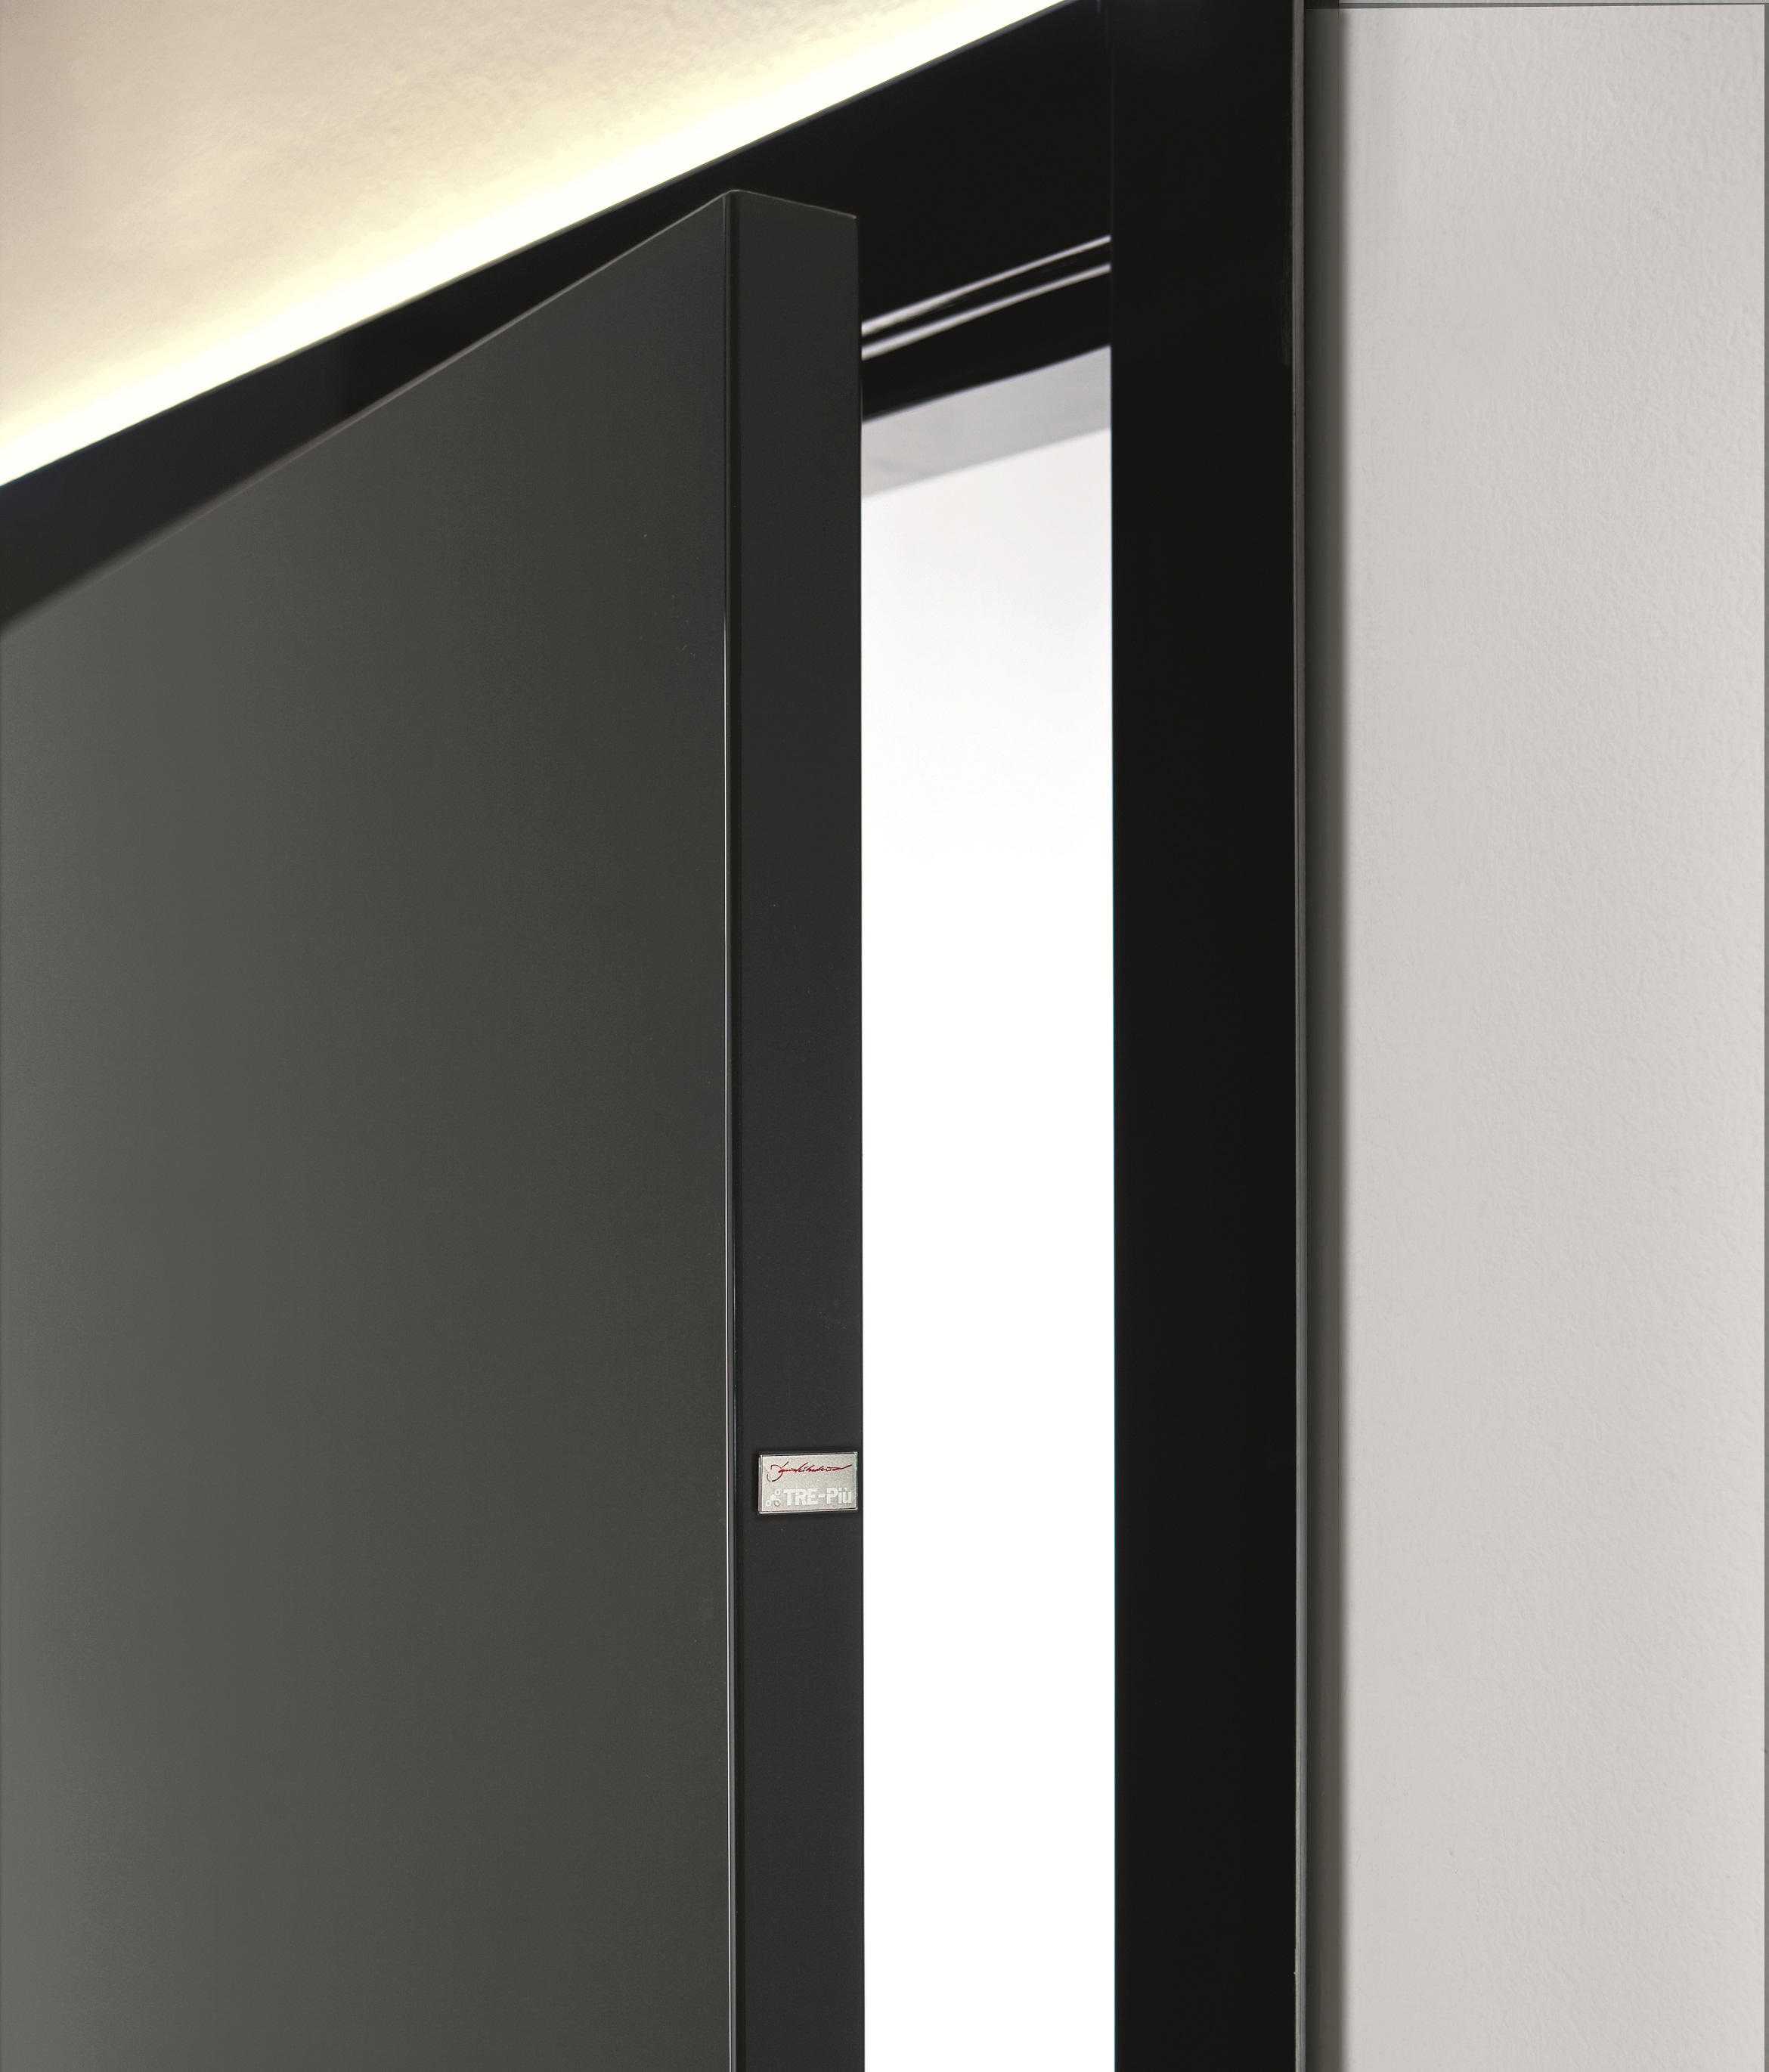 IDEA - Porte interni TRE-P & TRE-Più | Architonic